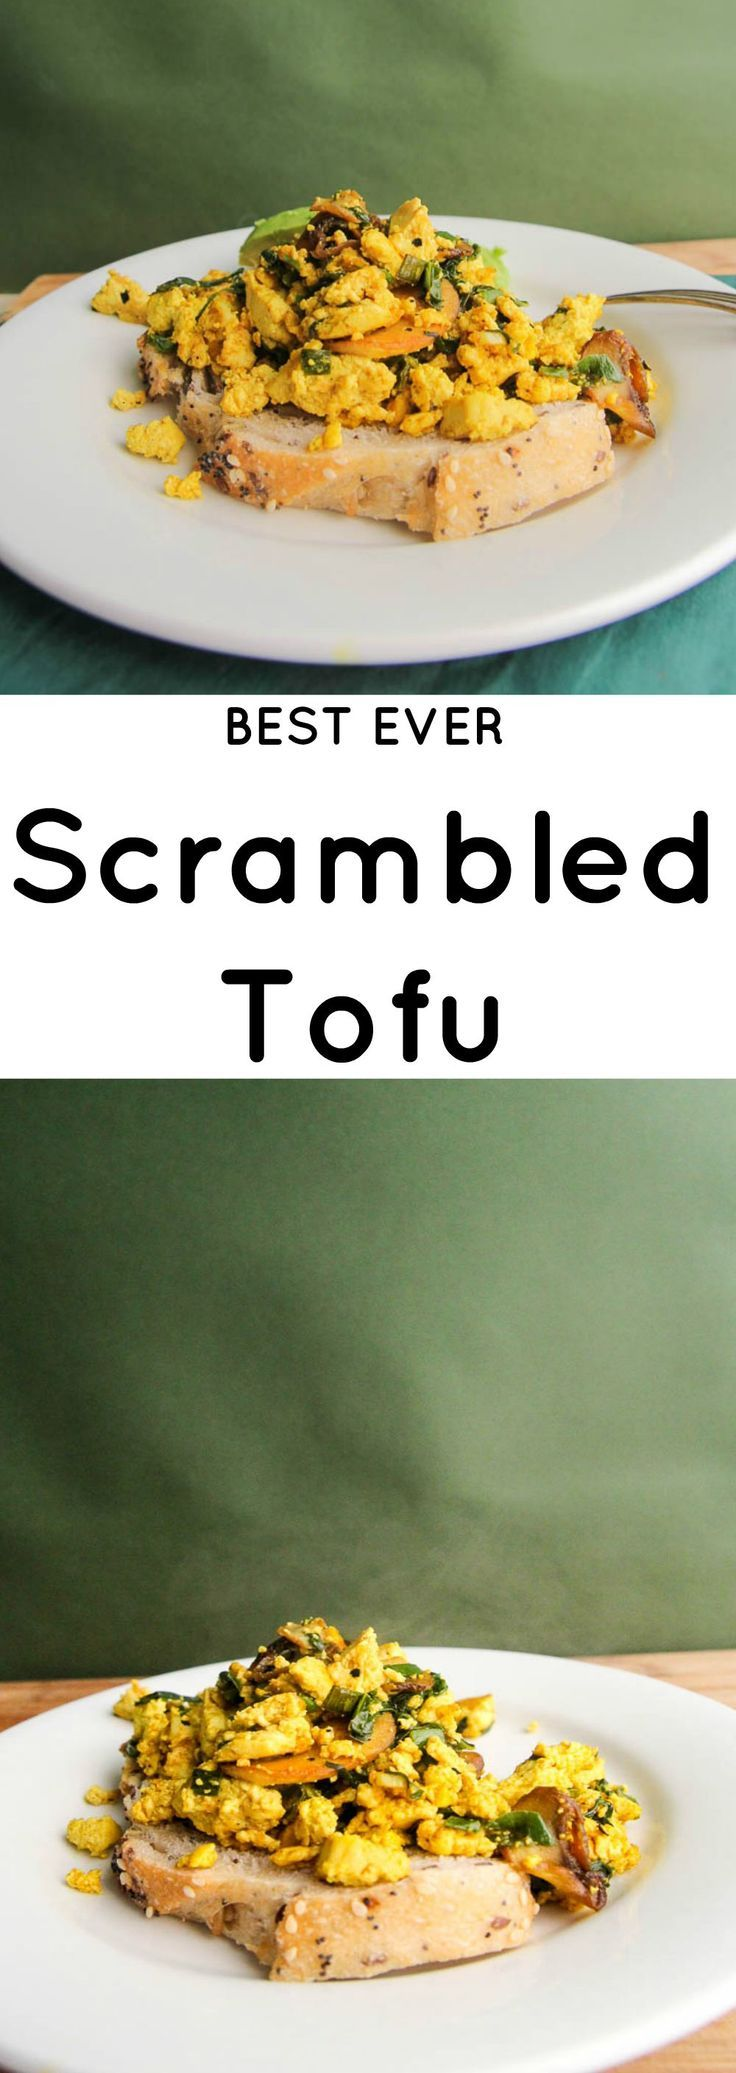 One secret ingredient away to making the best scrambled tofu ever. Get the recipe now to discover the moistest scramble ever.